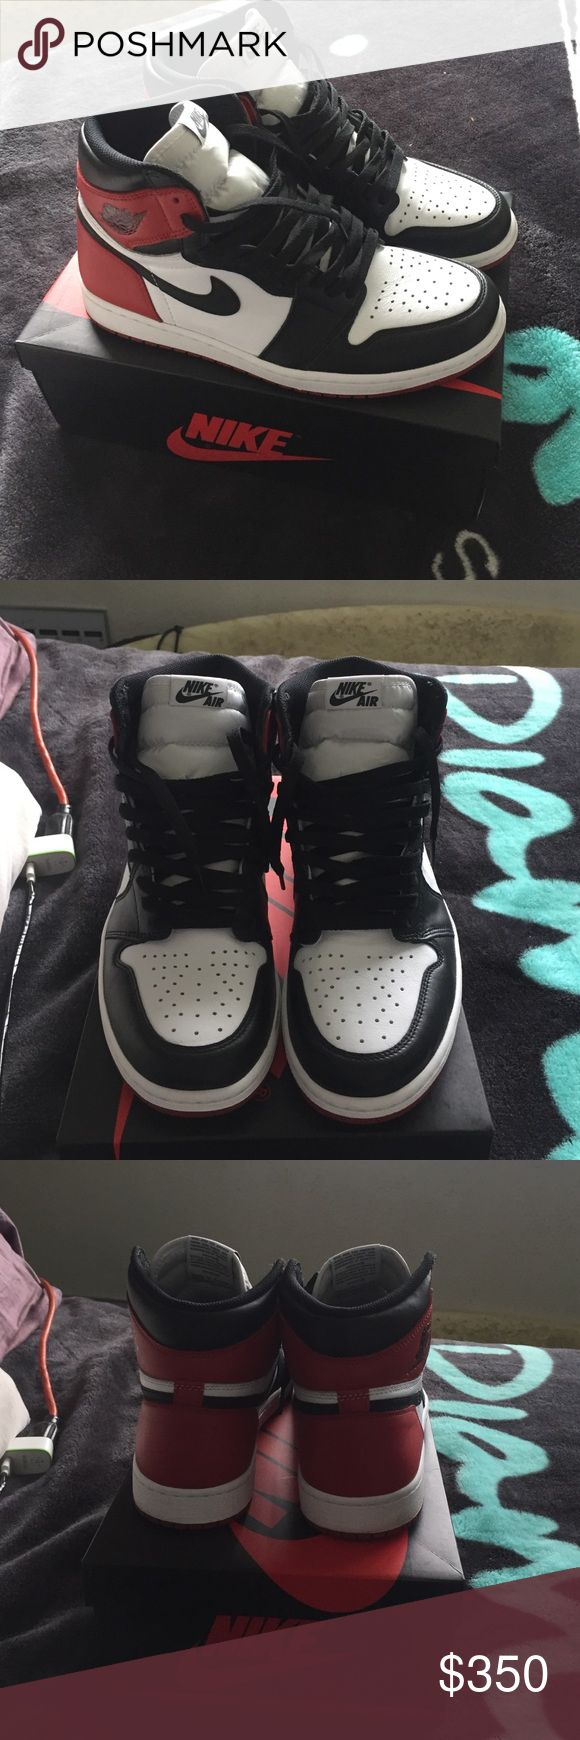 Air Jordan 1 retro black toe I've worn these twice but I sell sneakers so that's why these up for grabs Jordan Shoes Athletic Shoes